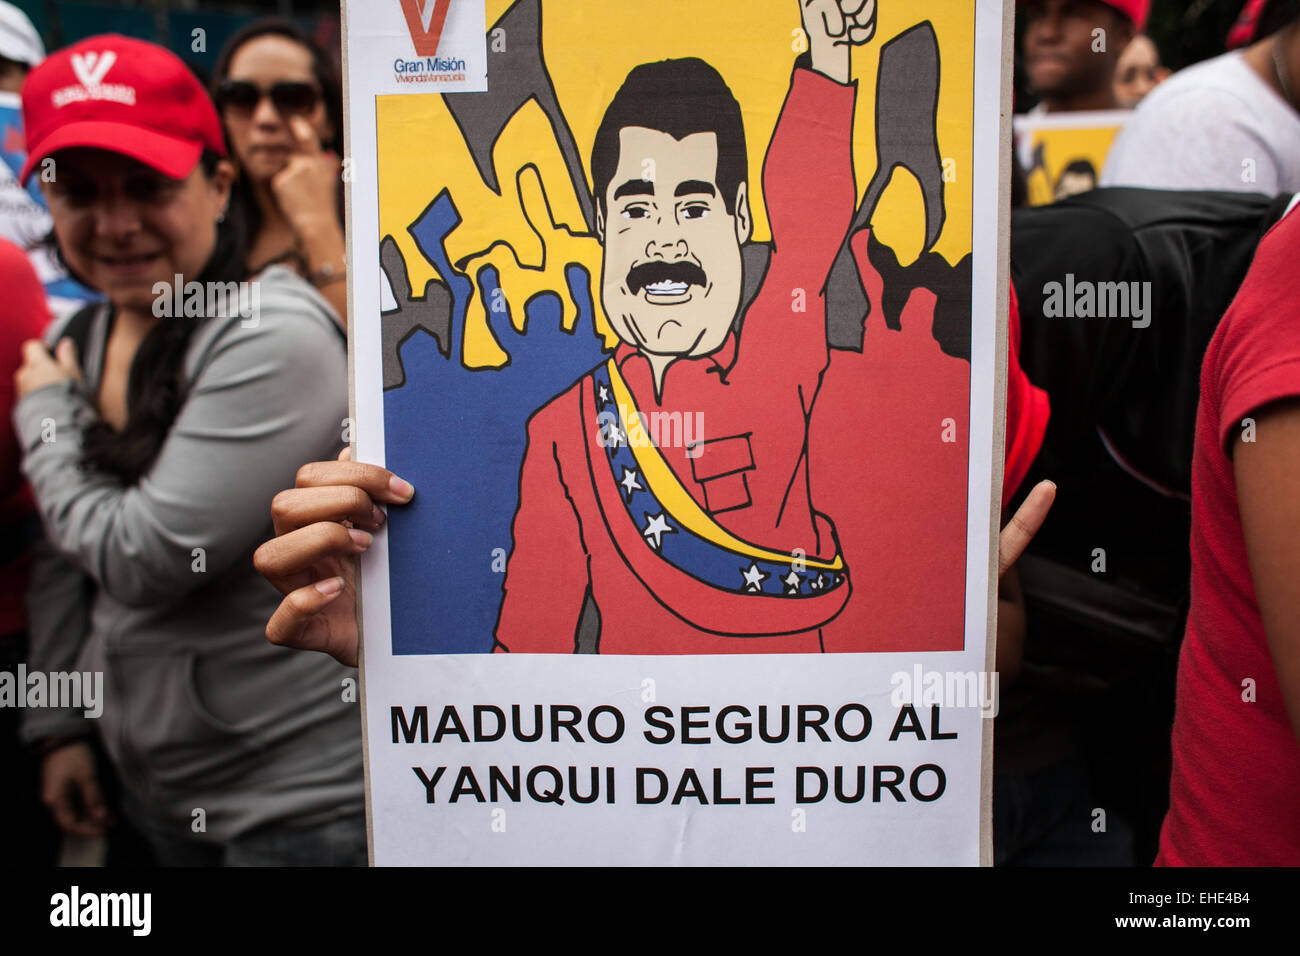 Caracas, Venezuela. 12th Mar, 2015. A person holds a banner during an 'anti-imperialist' march in Caracas, - Stock Image